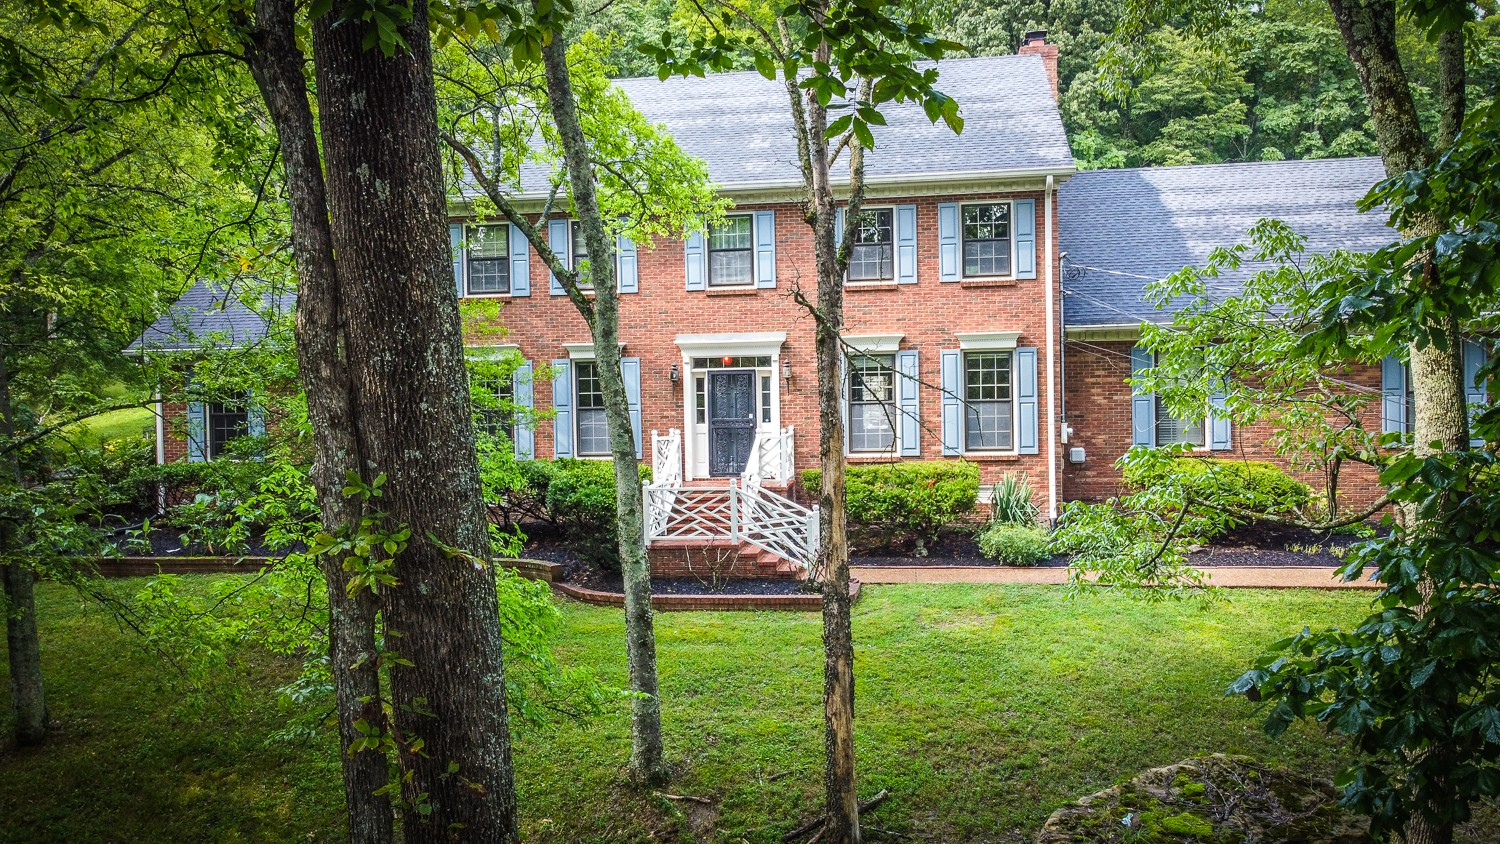 501 Dry Creek Rd Property Photo - Goodlettsville, TN real estate listing